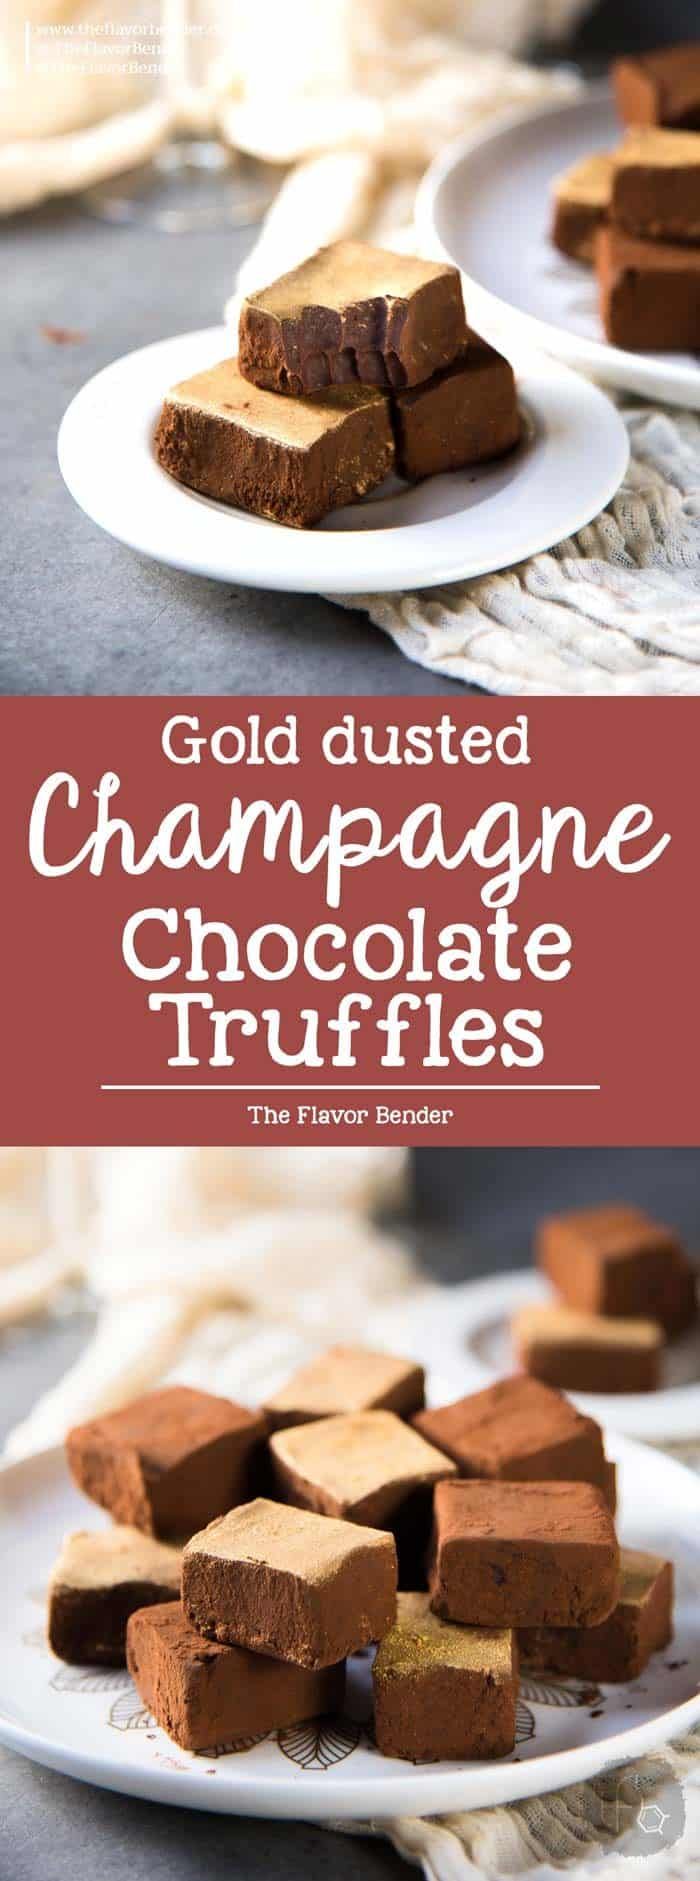 Chocolate Champagne Truffles - melt in your mouth soft, velvety, decadent, fruity truffles that easy and less messy to make. Dusted with cocoa powder and gold luster dust. Perfect for celebrations.